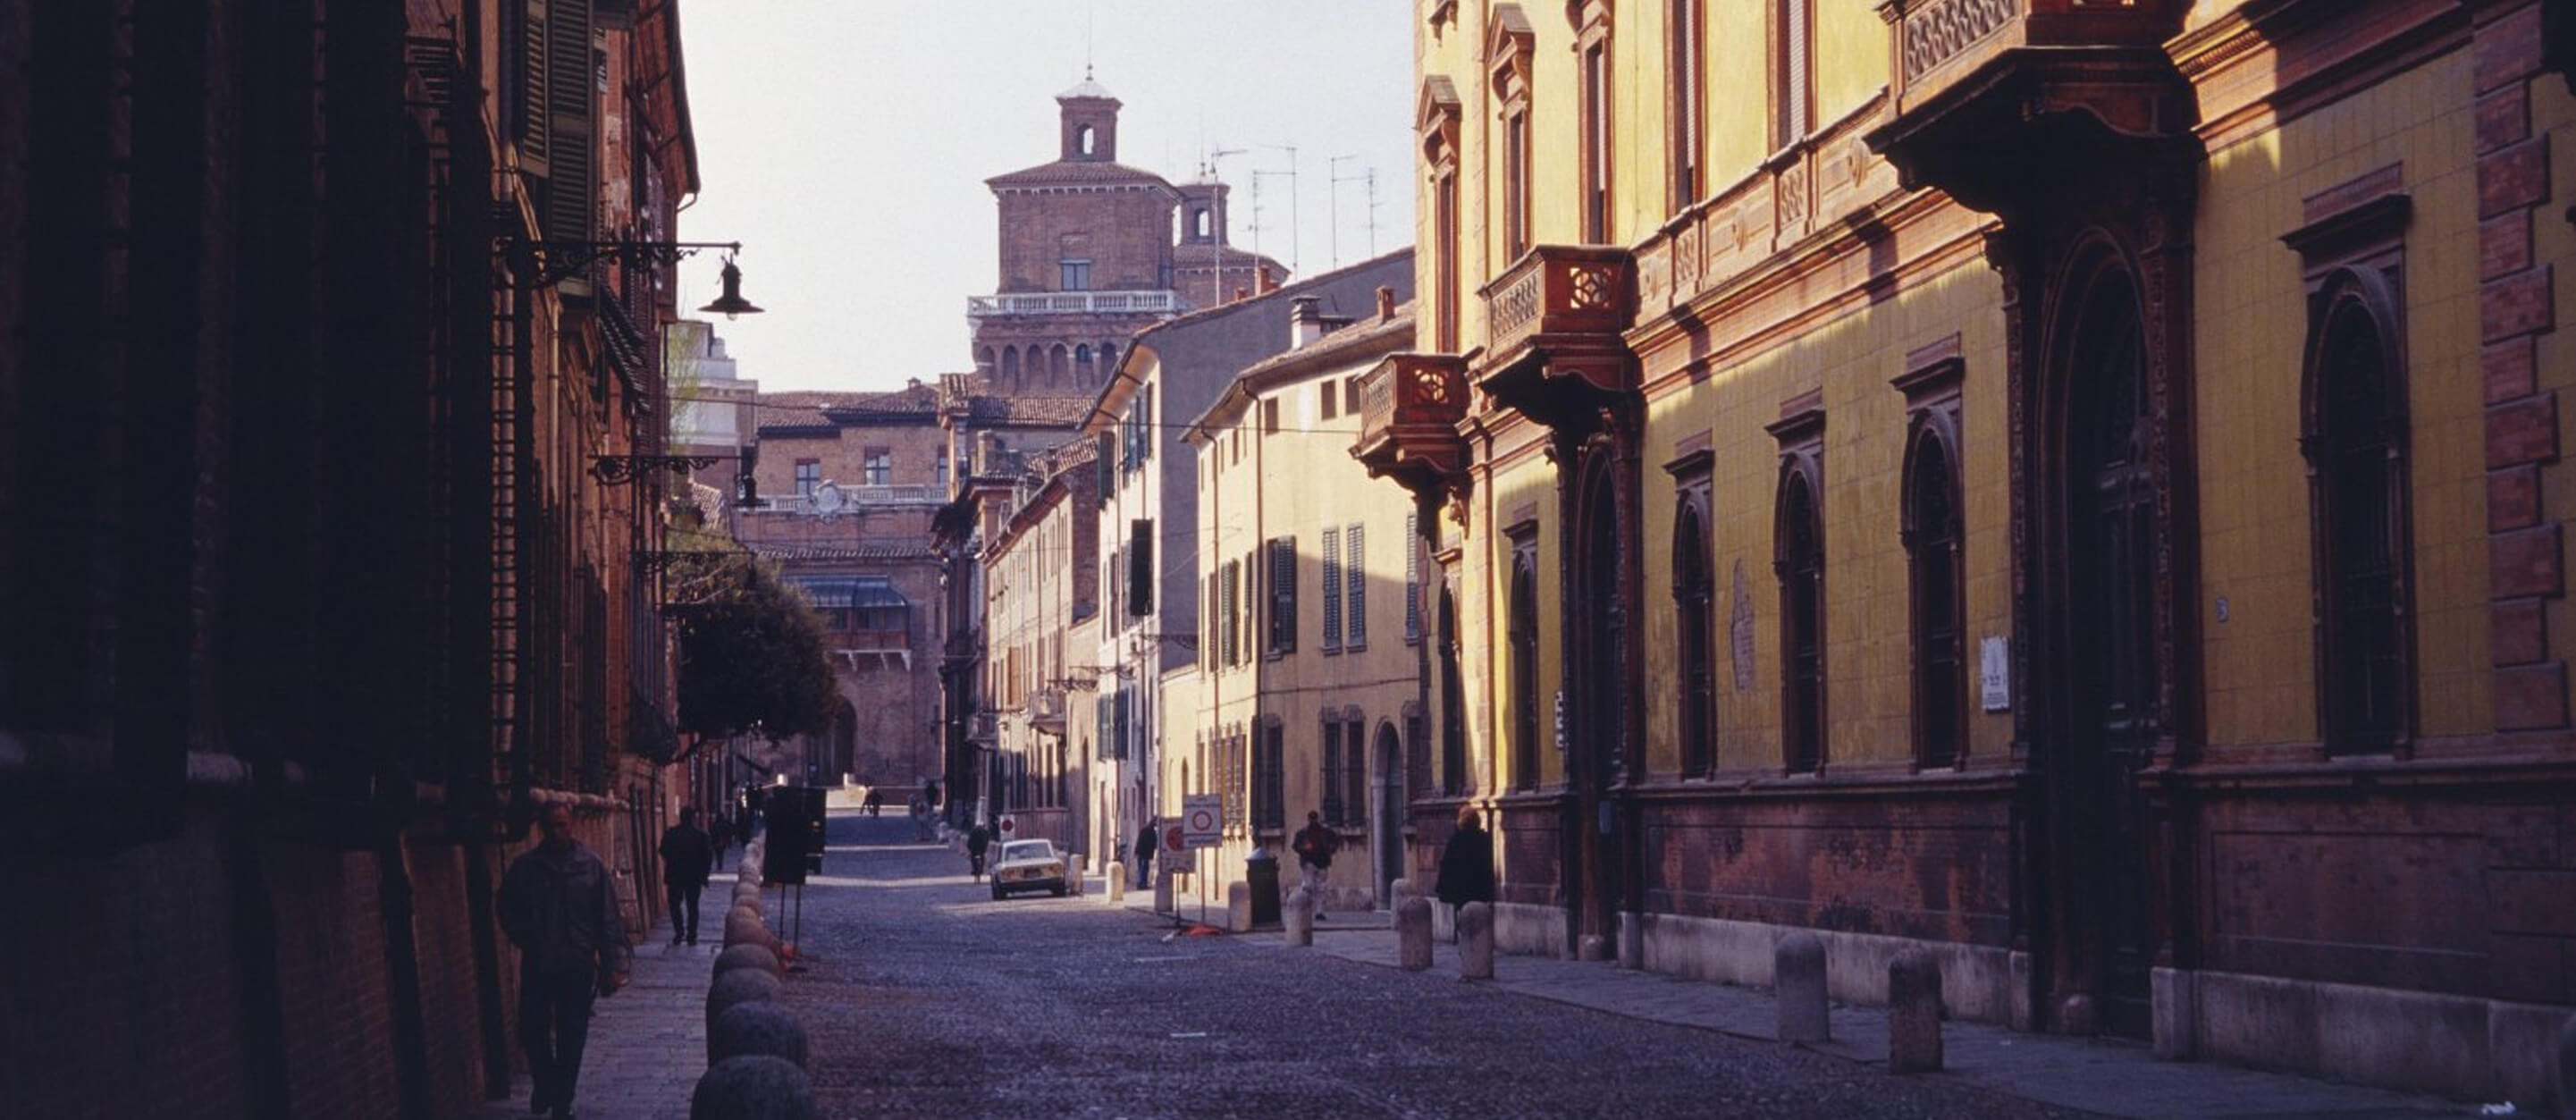 10 things to see in ferrara